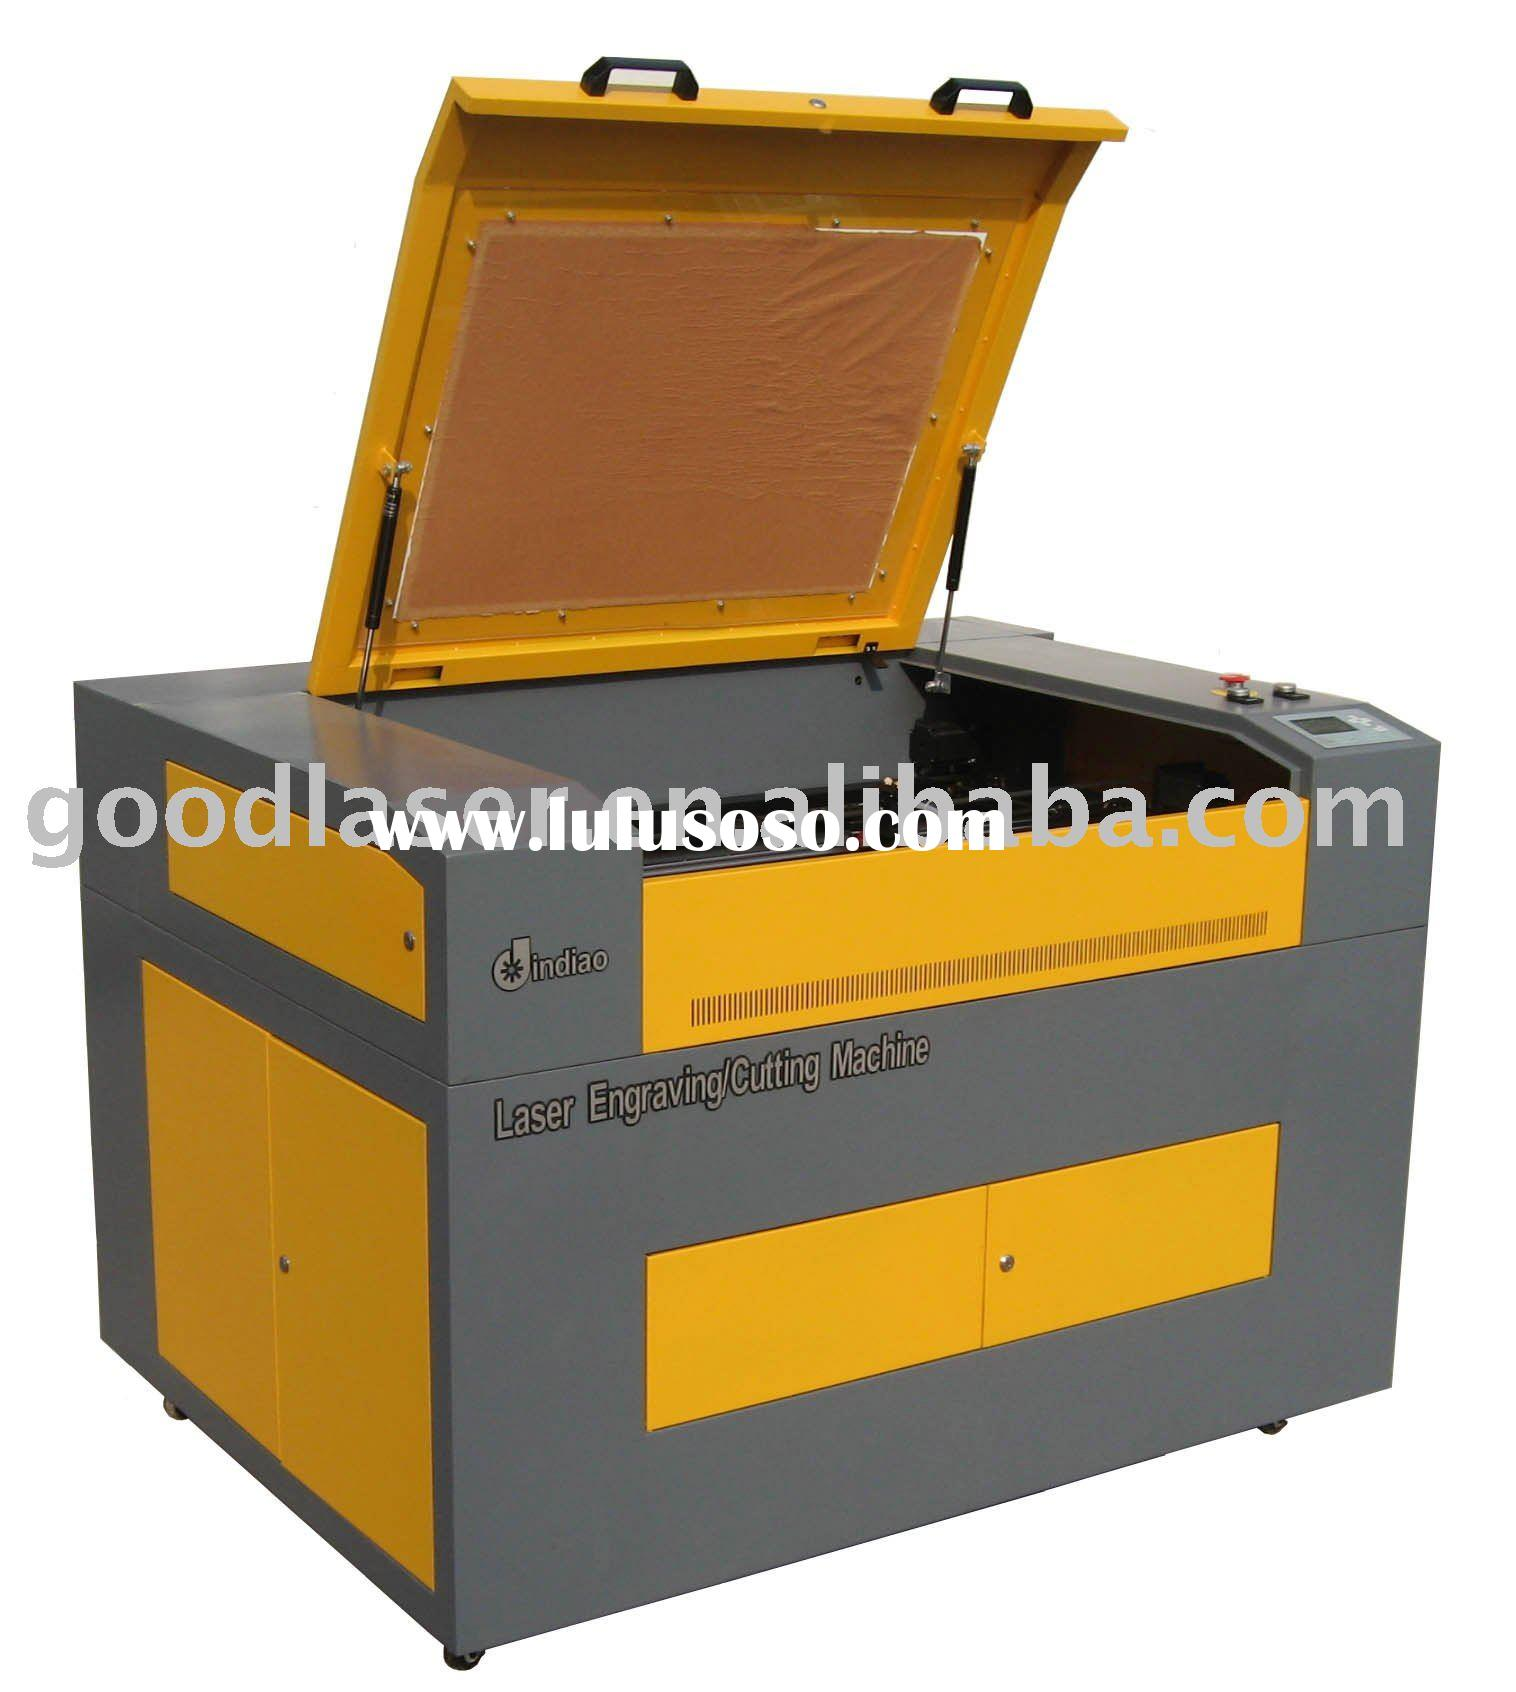 Wood, Plastic, Cloth, Acrylic, Glass, Bamboo Laser Engraving Machine